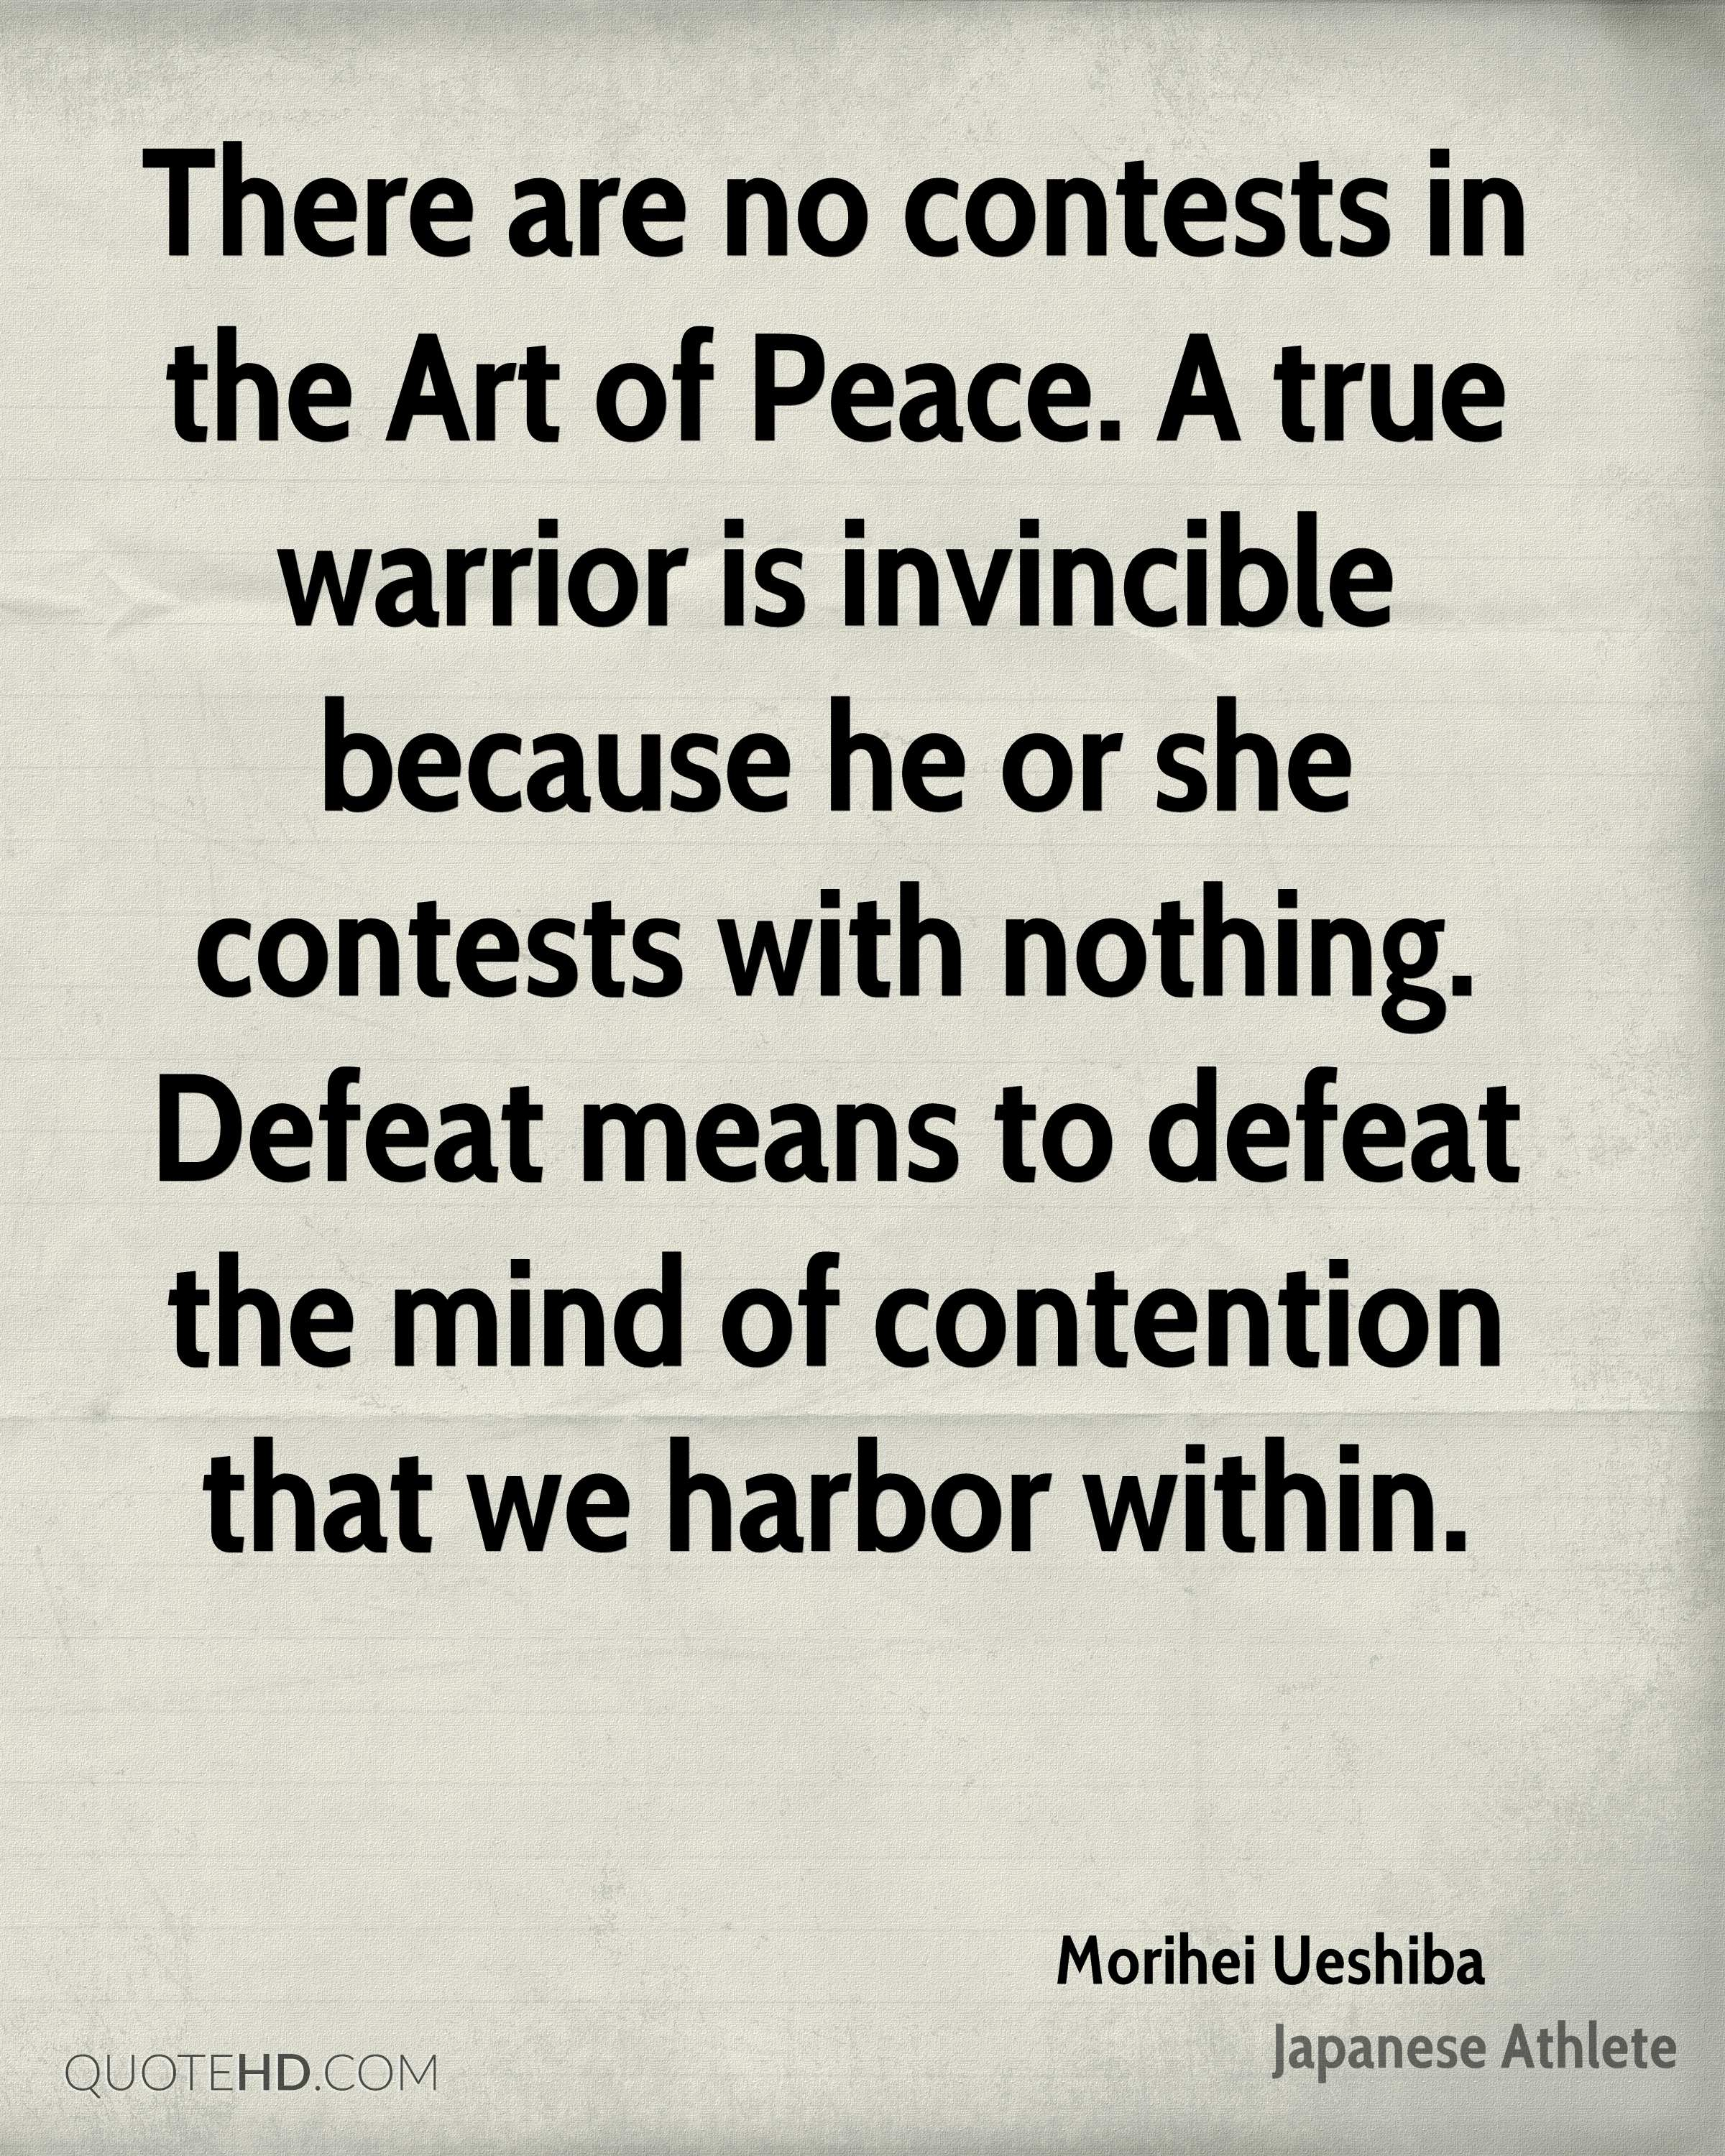 There are no contests in the Art of Peace. A true warrior is invincible because he or she contests with nothing. Defeat means to defeat the mind of contention that we harbor within.